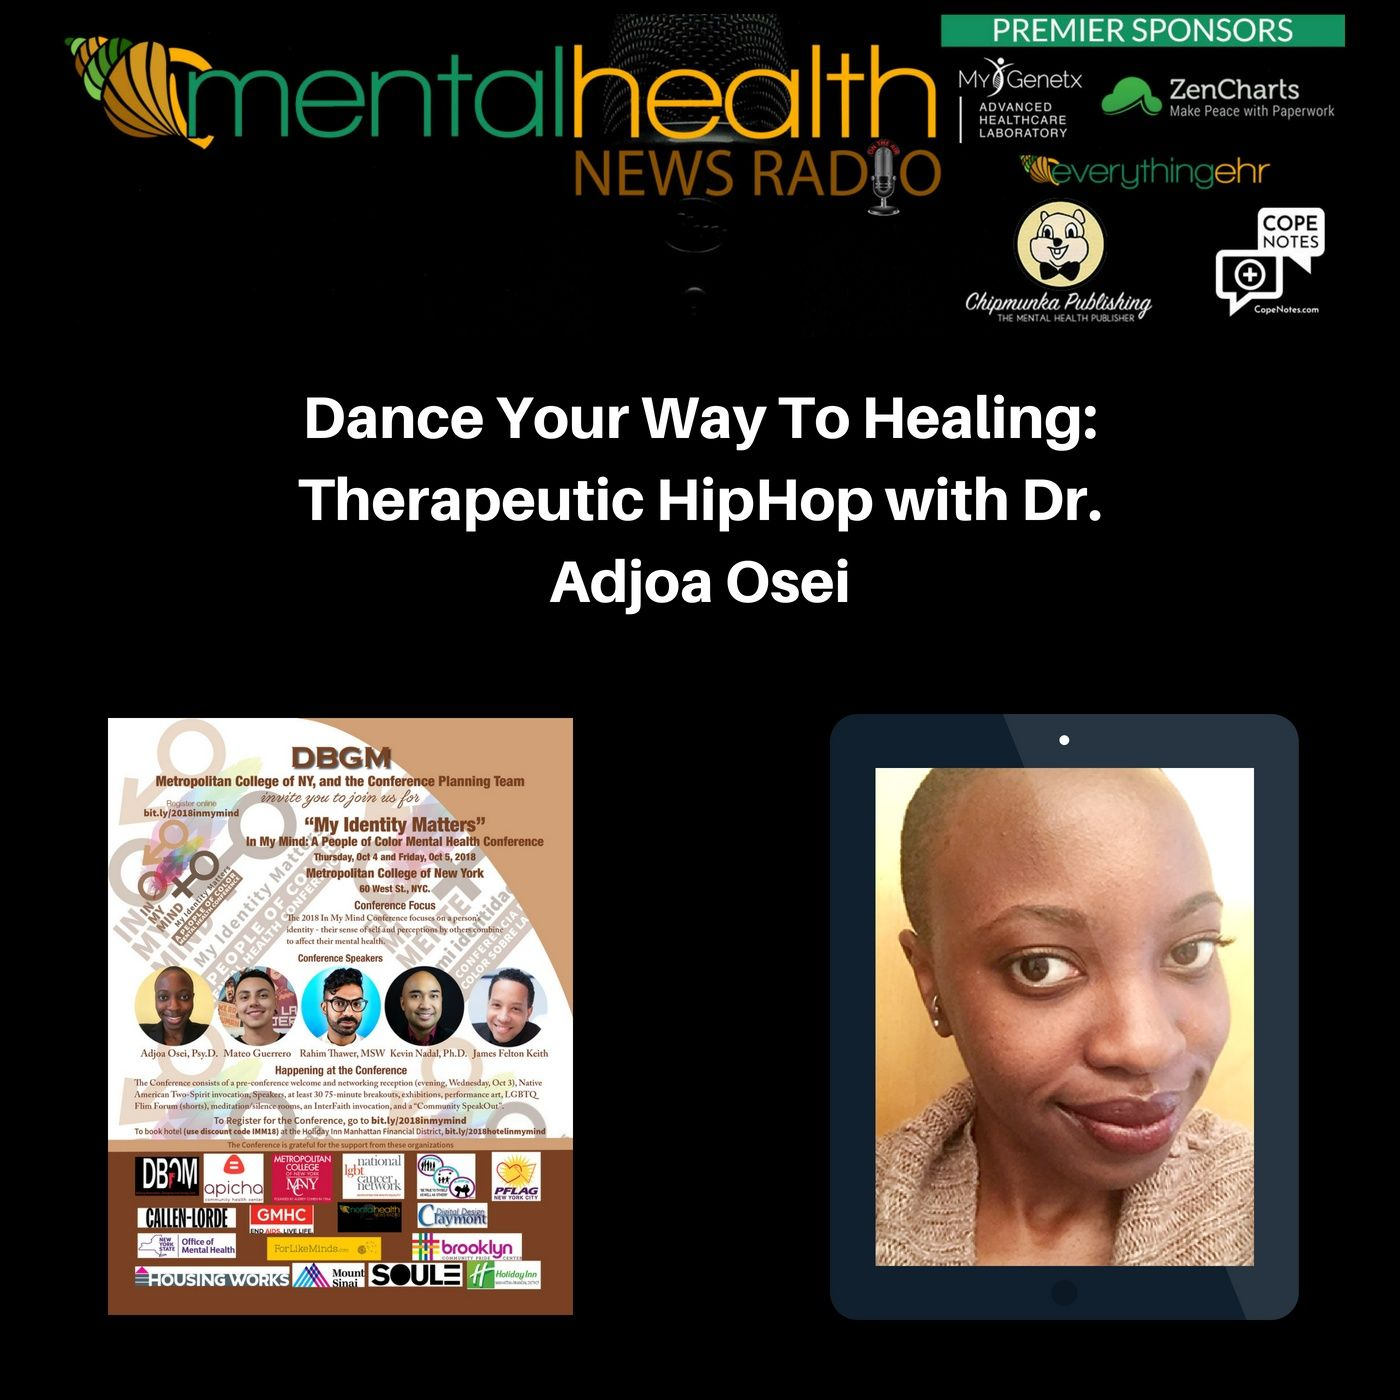 Mental Health News Radio - Dance Your Way To Healing: Therapeutic HipHop with Dr. Adjoa Osei